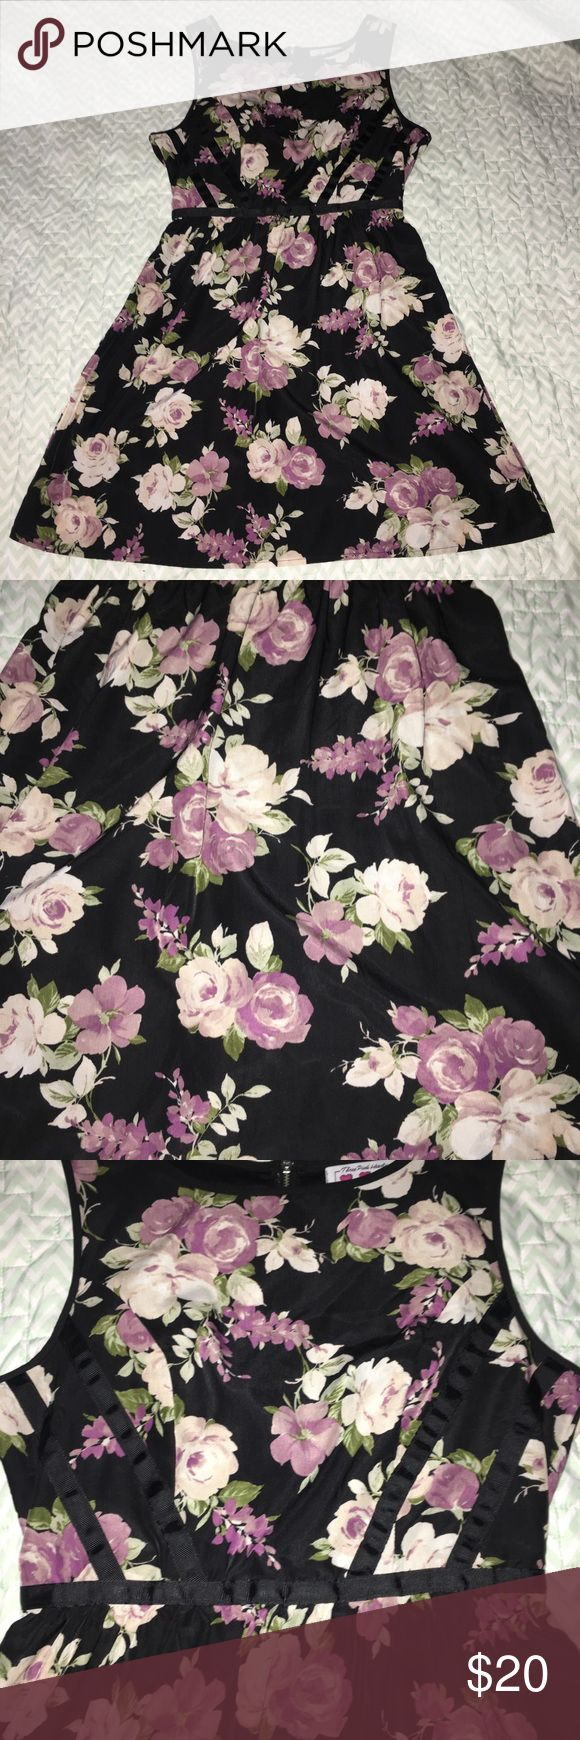 Three Pink Hearts Floral Dress - Size 7 25% off 7+items   PRICE is negotiable, unless otherwise stated.   Details: super cute eye catching dress. Full zipper back, unique back strap design down front boat neck Tank style. Very cute sundress double layer  ••COLOR: black/PINK  Size: 7  Brand: Three Pink Hearts   Condition: Like New   #CksOverload #ShopNow #Share #Follow #ISO #InstaShop #ForSale #NOTRADE #LookingFor  ••I do NOT TRADE••  Used items may contain piling &/or signs of wash and wear…